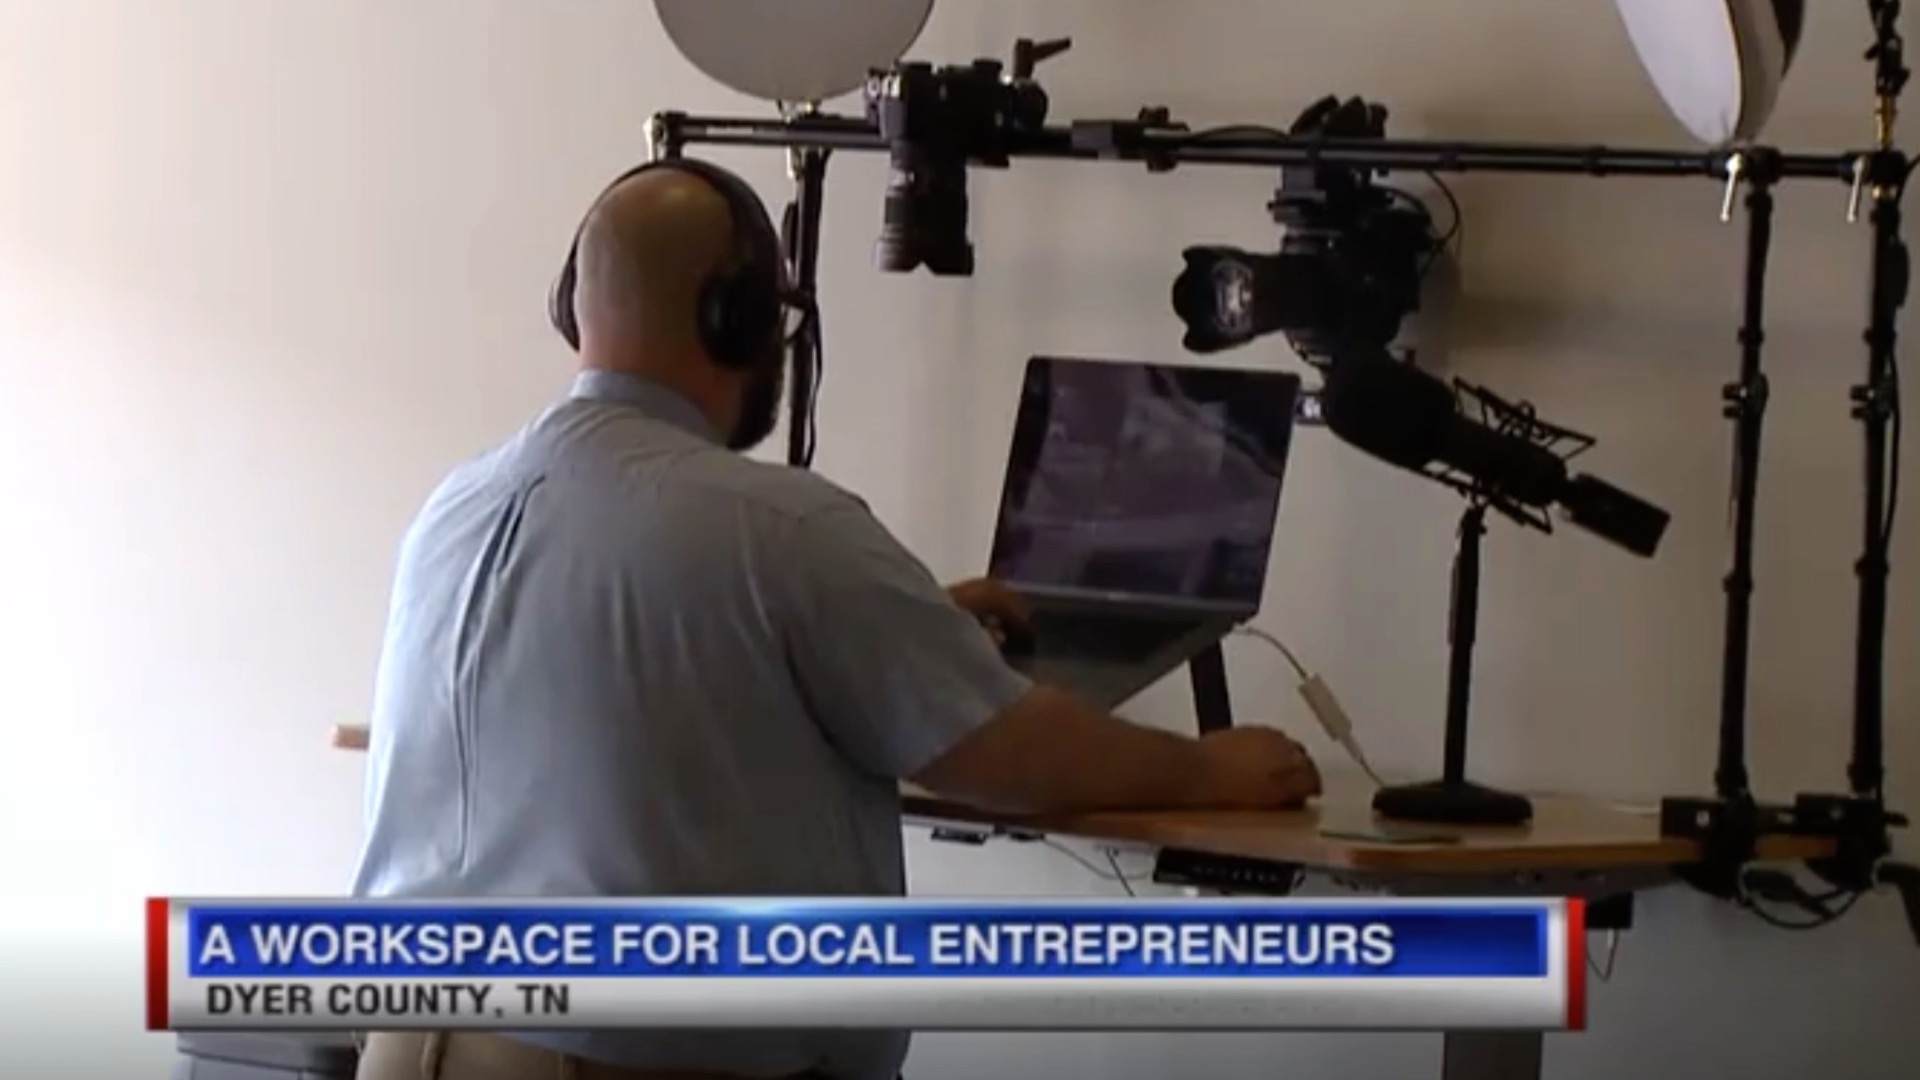 Local entrepreneur hopes to help others with shared workspace 1.jpg